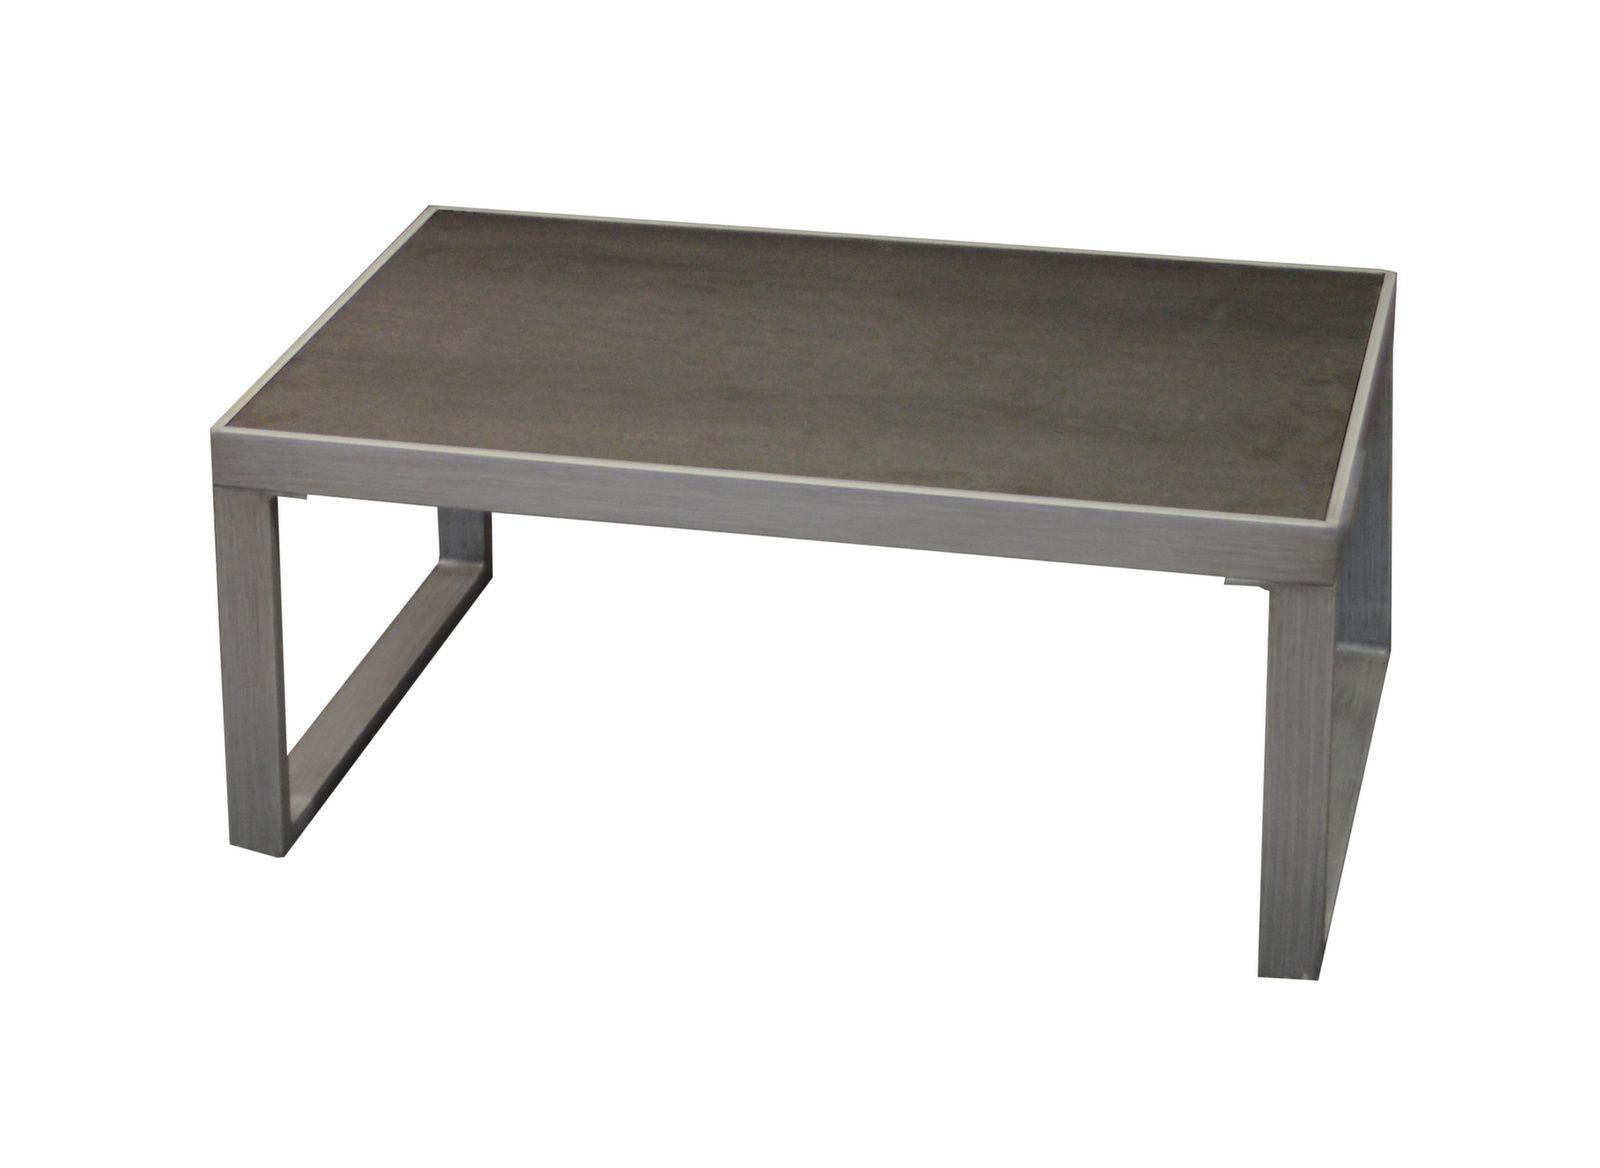 Table De Jardin Plateau Ceramique Table Basse Manhattan Plateau Céramique Tables Basses